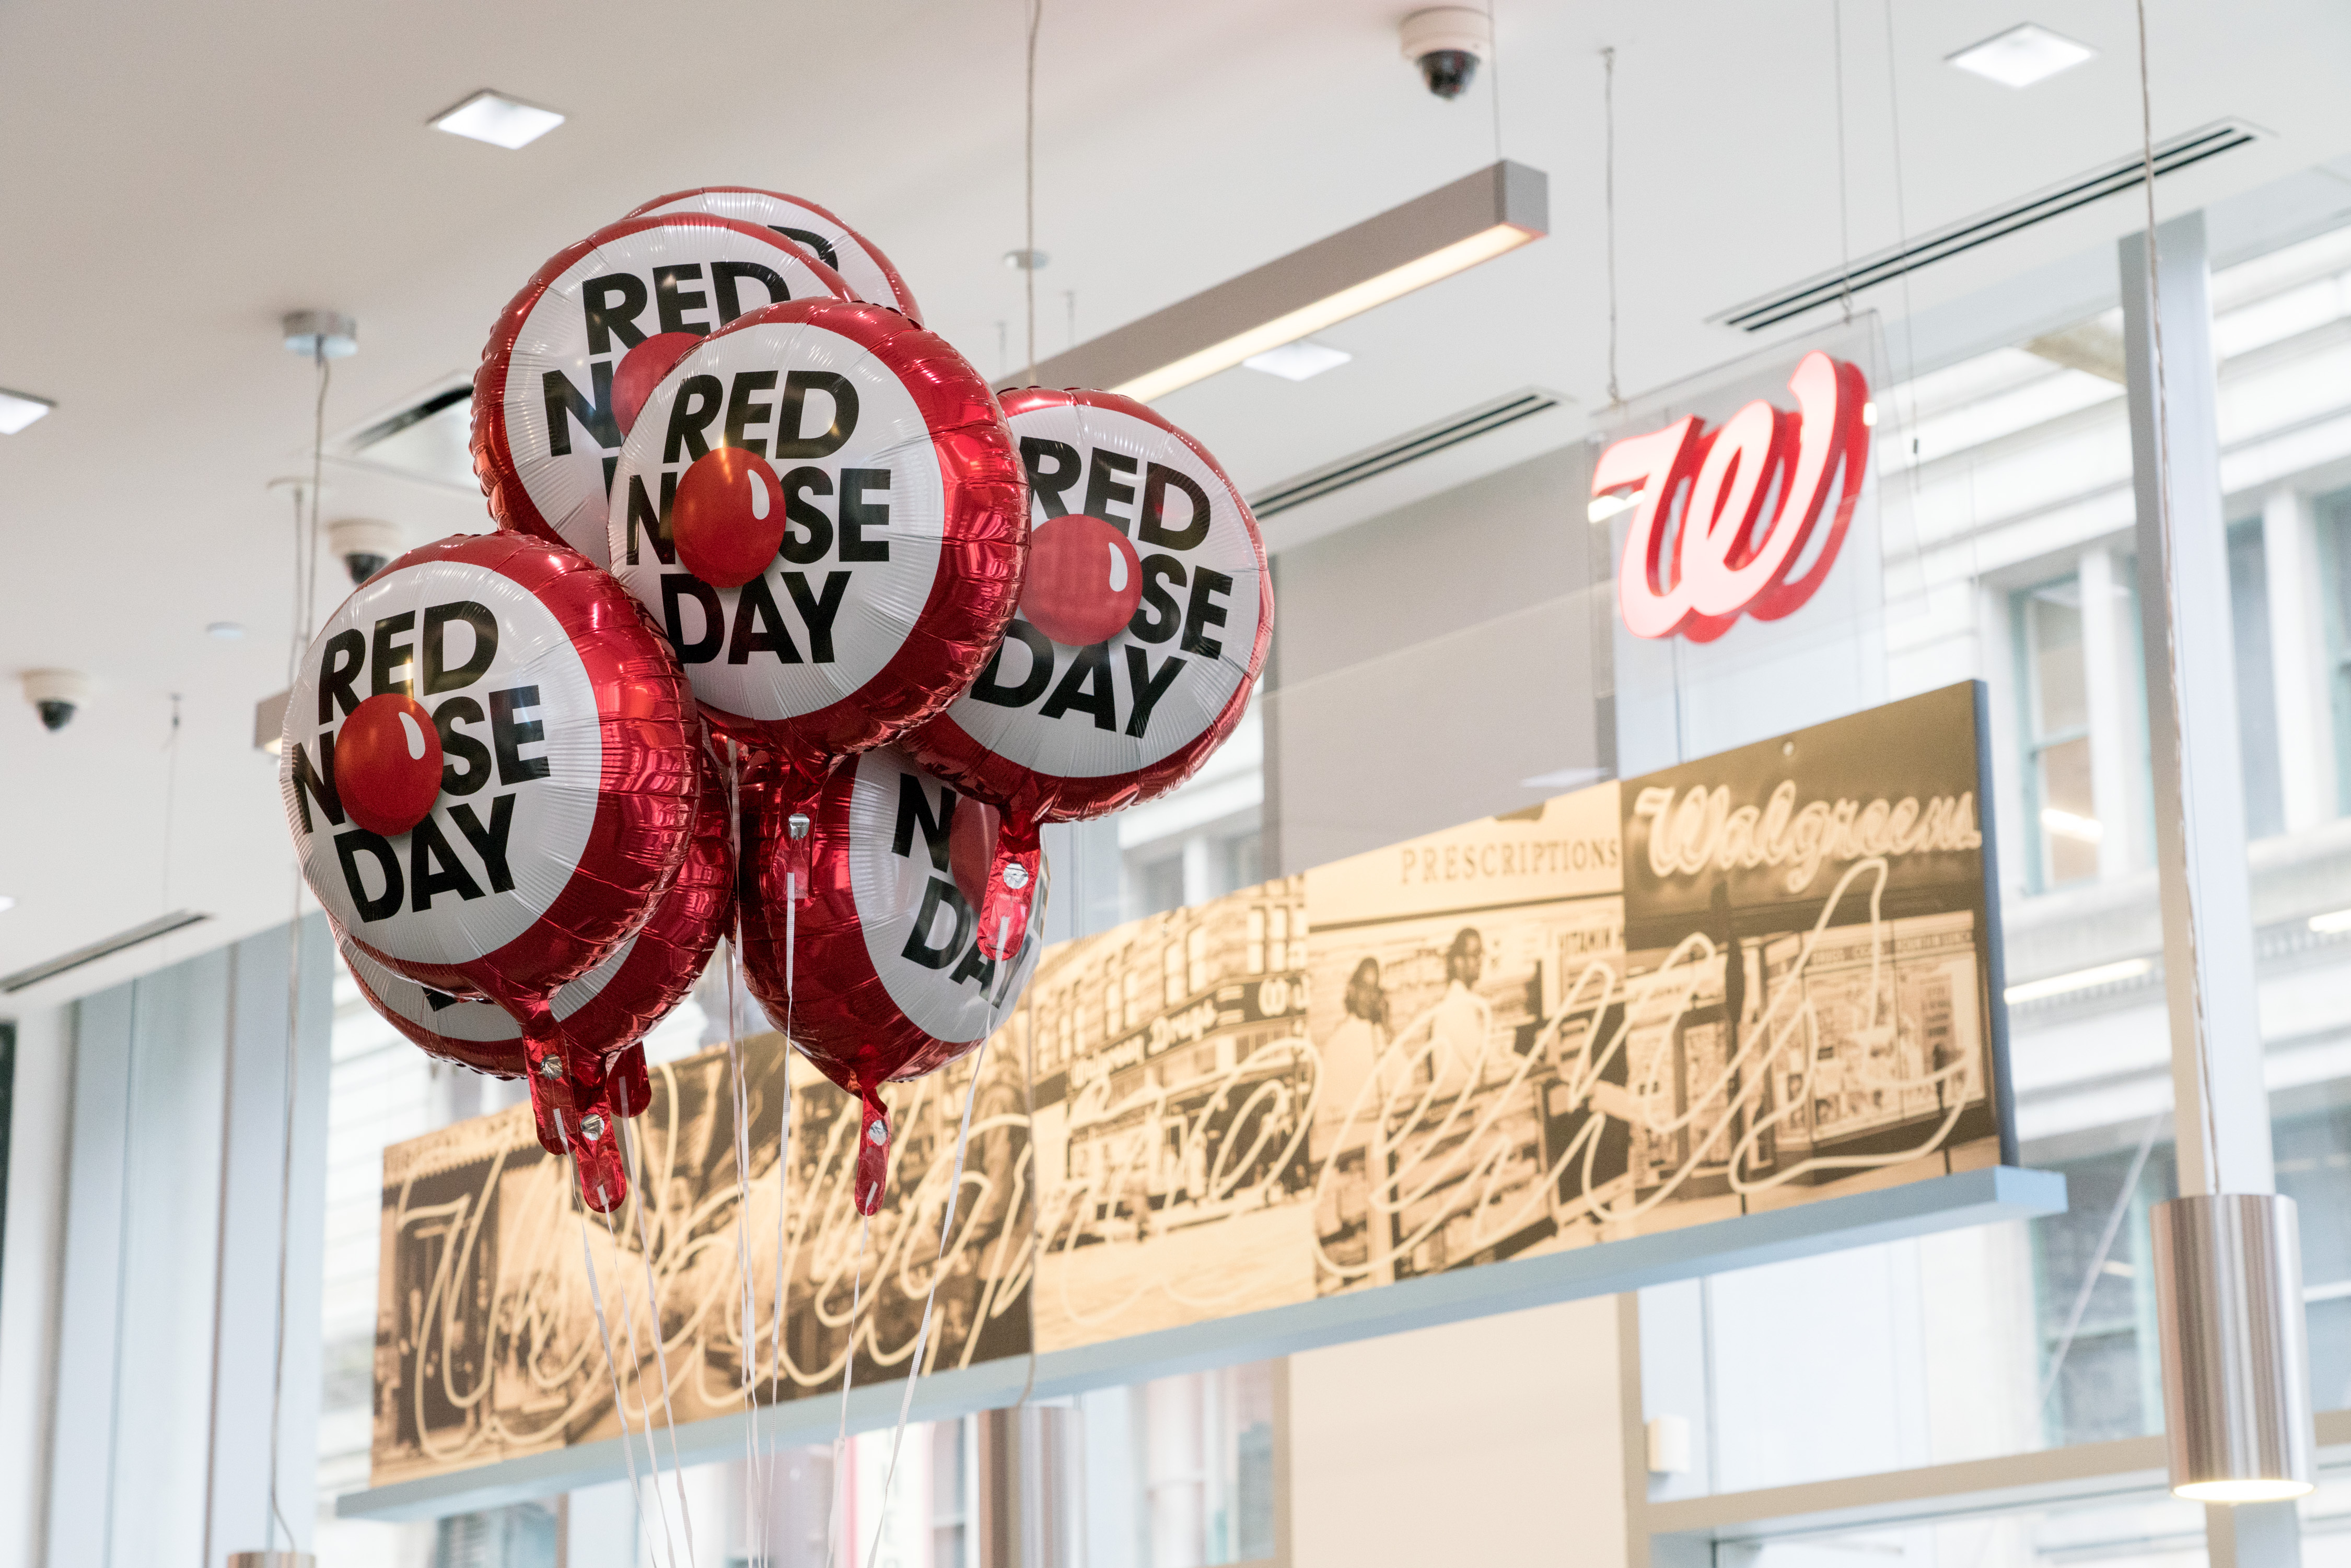 bc725c04d99a05 Noses On! Walgreens Welcomes Red Nose Day Back to America as the Exclusive  Retailer of the New Sparkle Red Nose | Business Wire